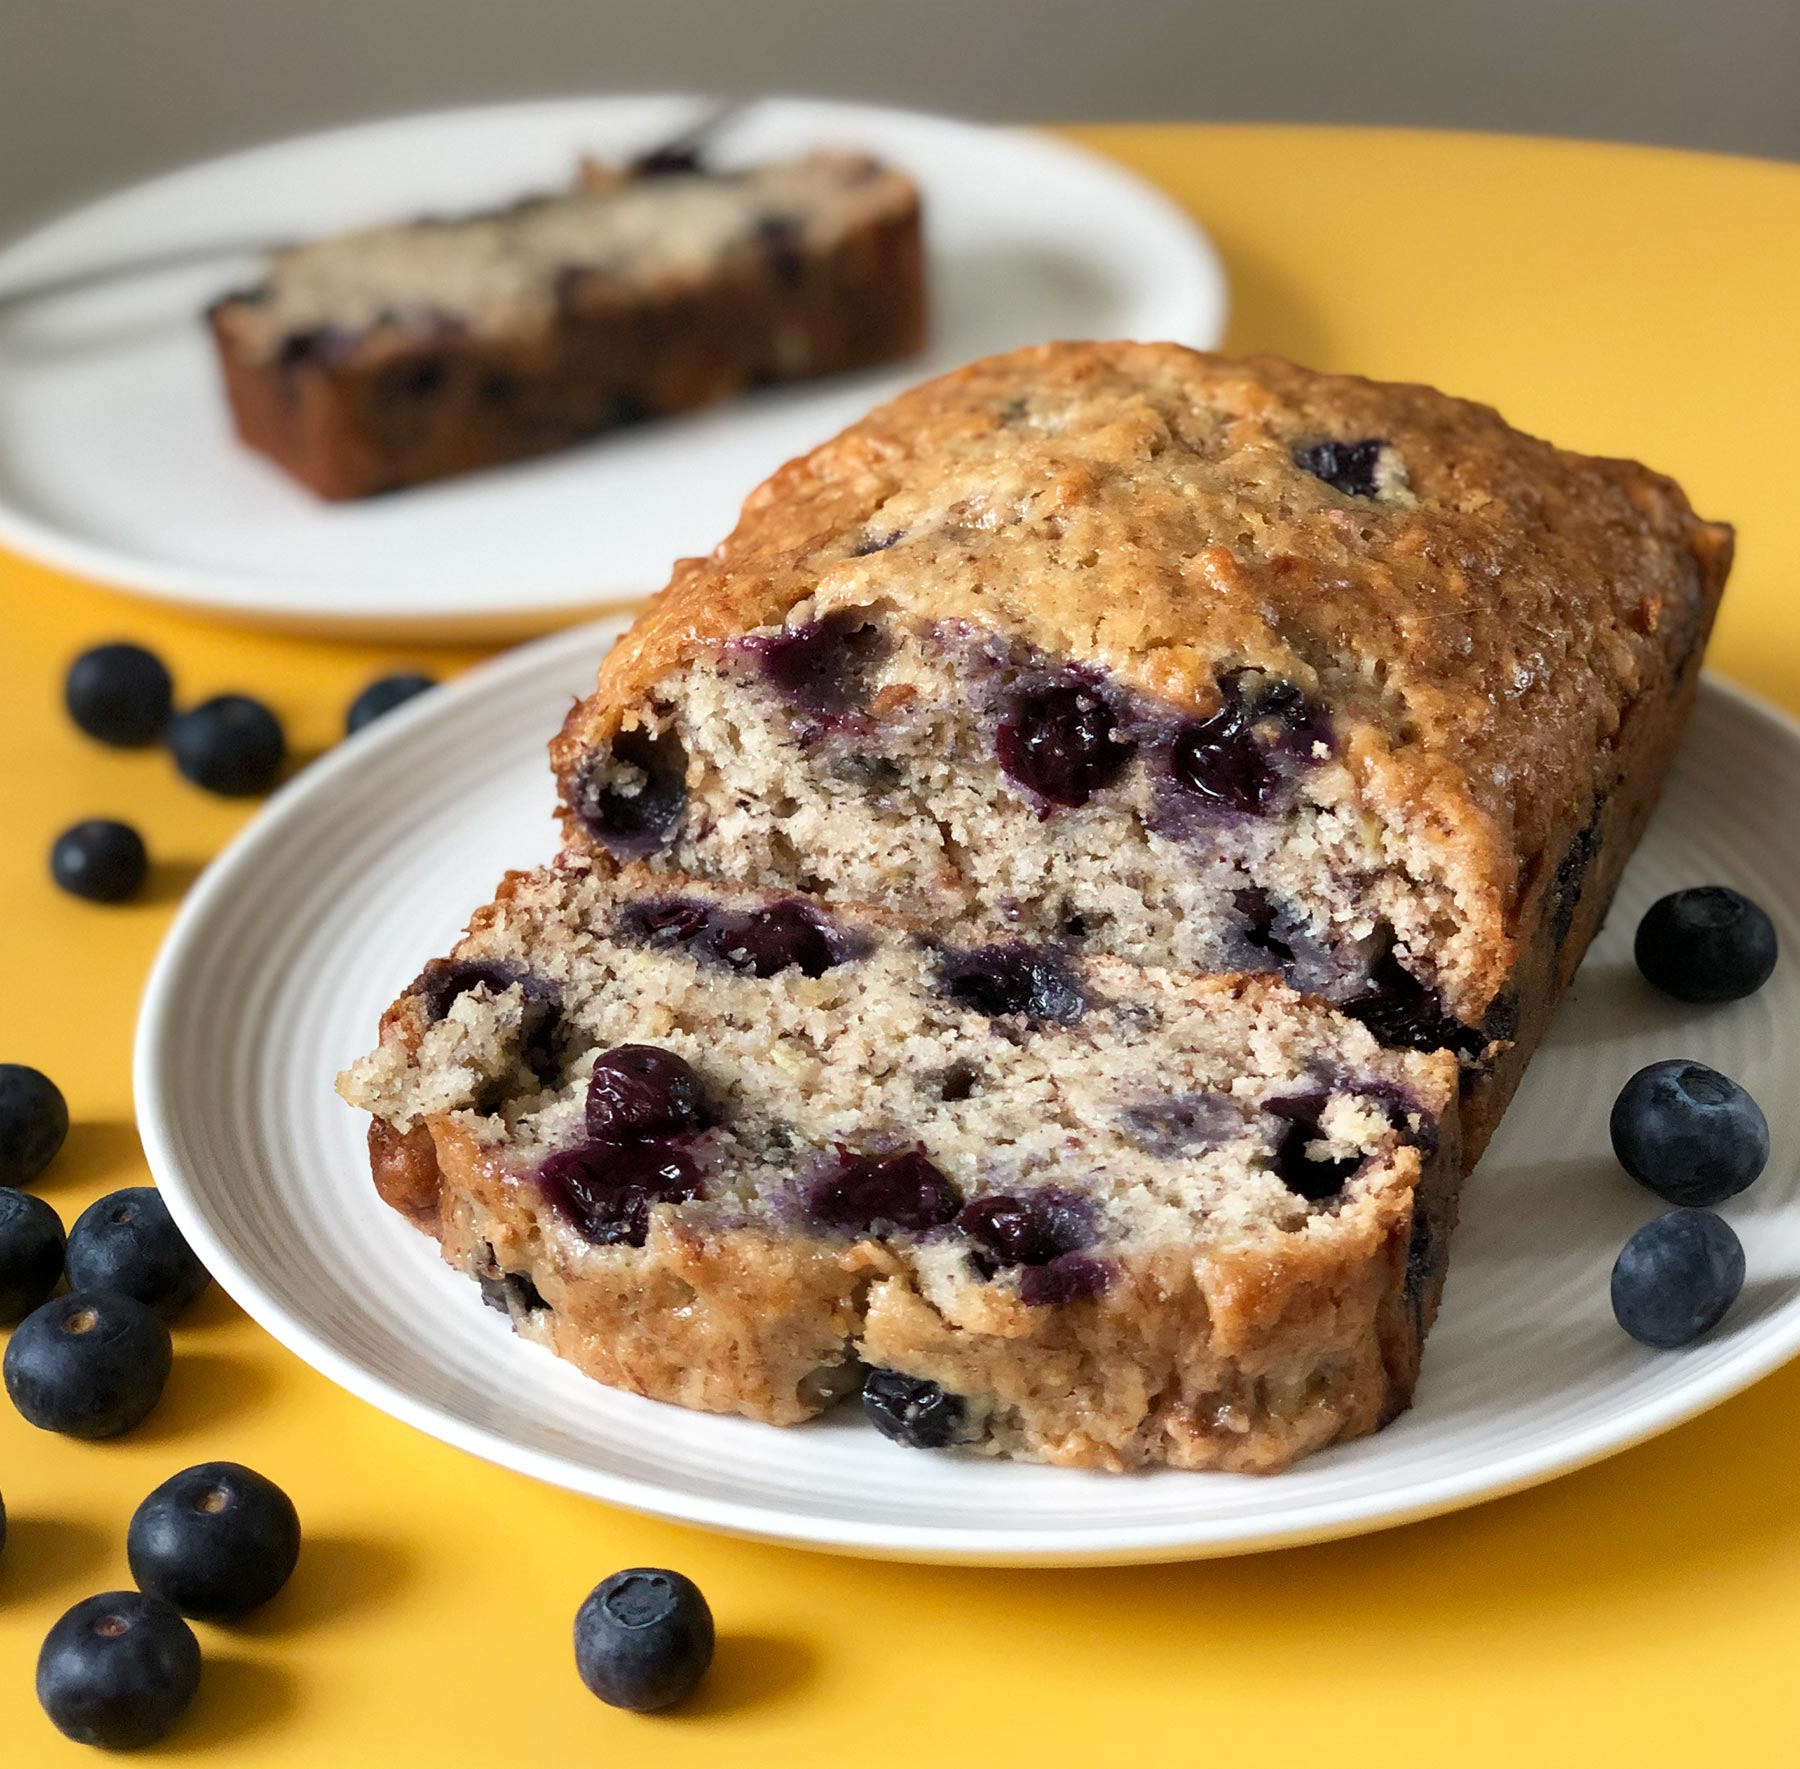 Banana bread with blueberries on a white plate and yellow table